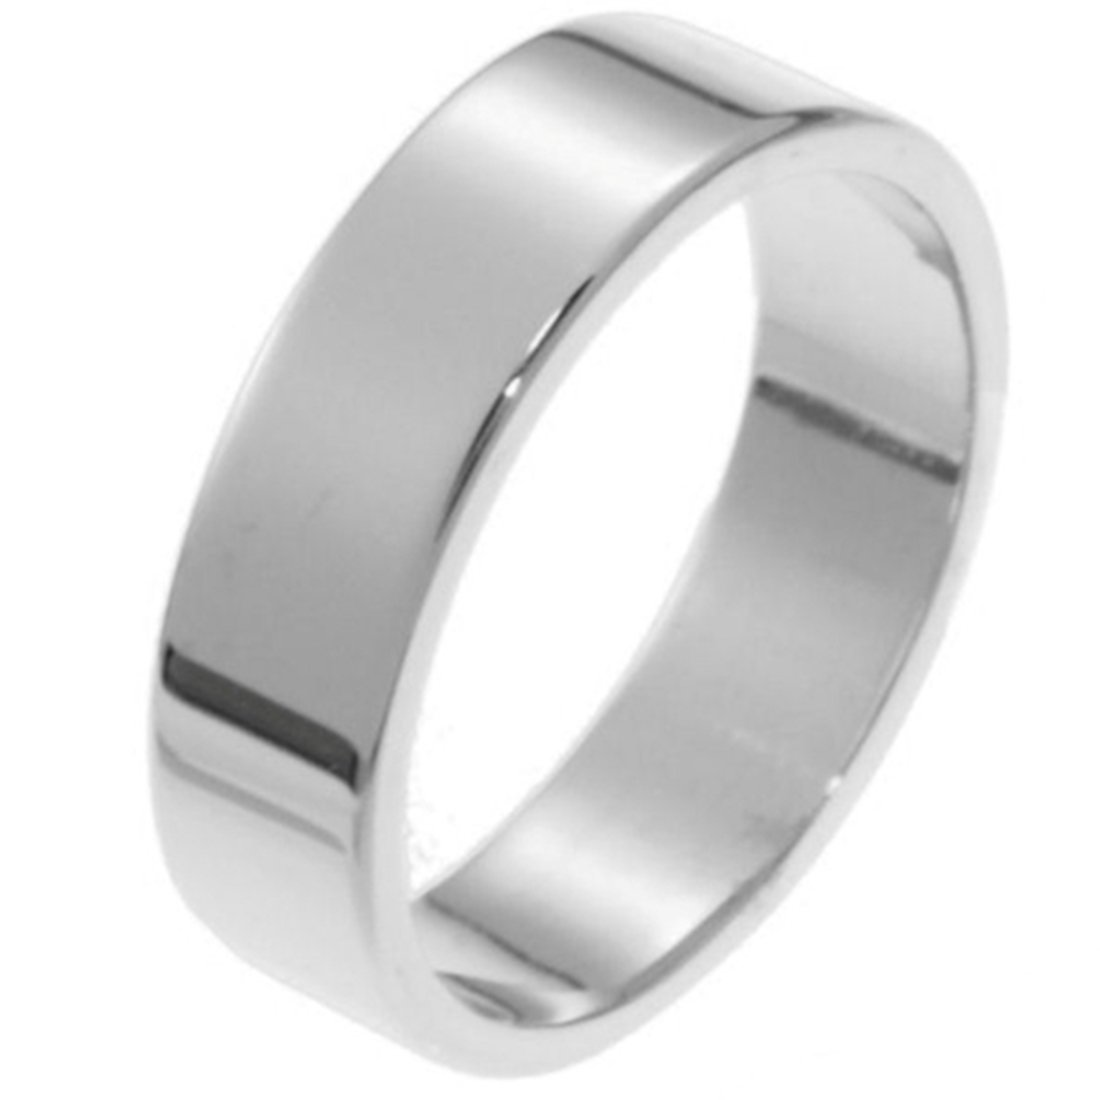 Womens Sterling Silver 6mm Flat Style Comfort Fit Wedding Band Ring